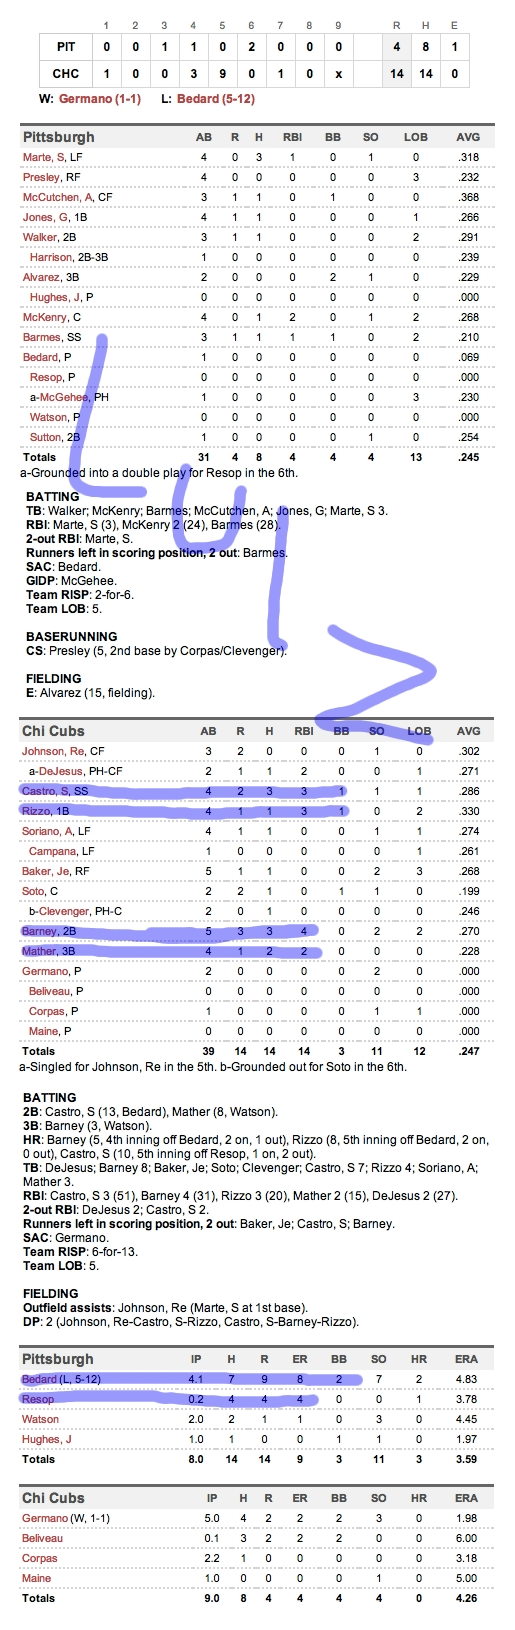 Enhanced Box Score: Pirates 4, Cubs 14 – July 30, 2012